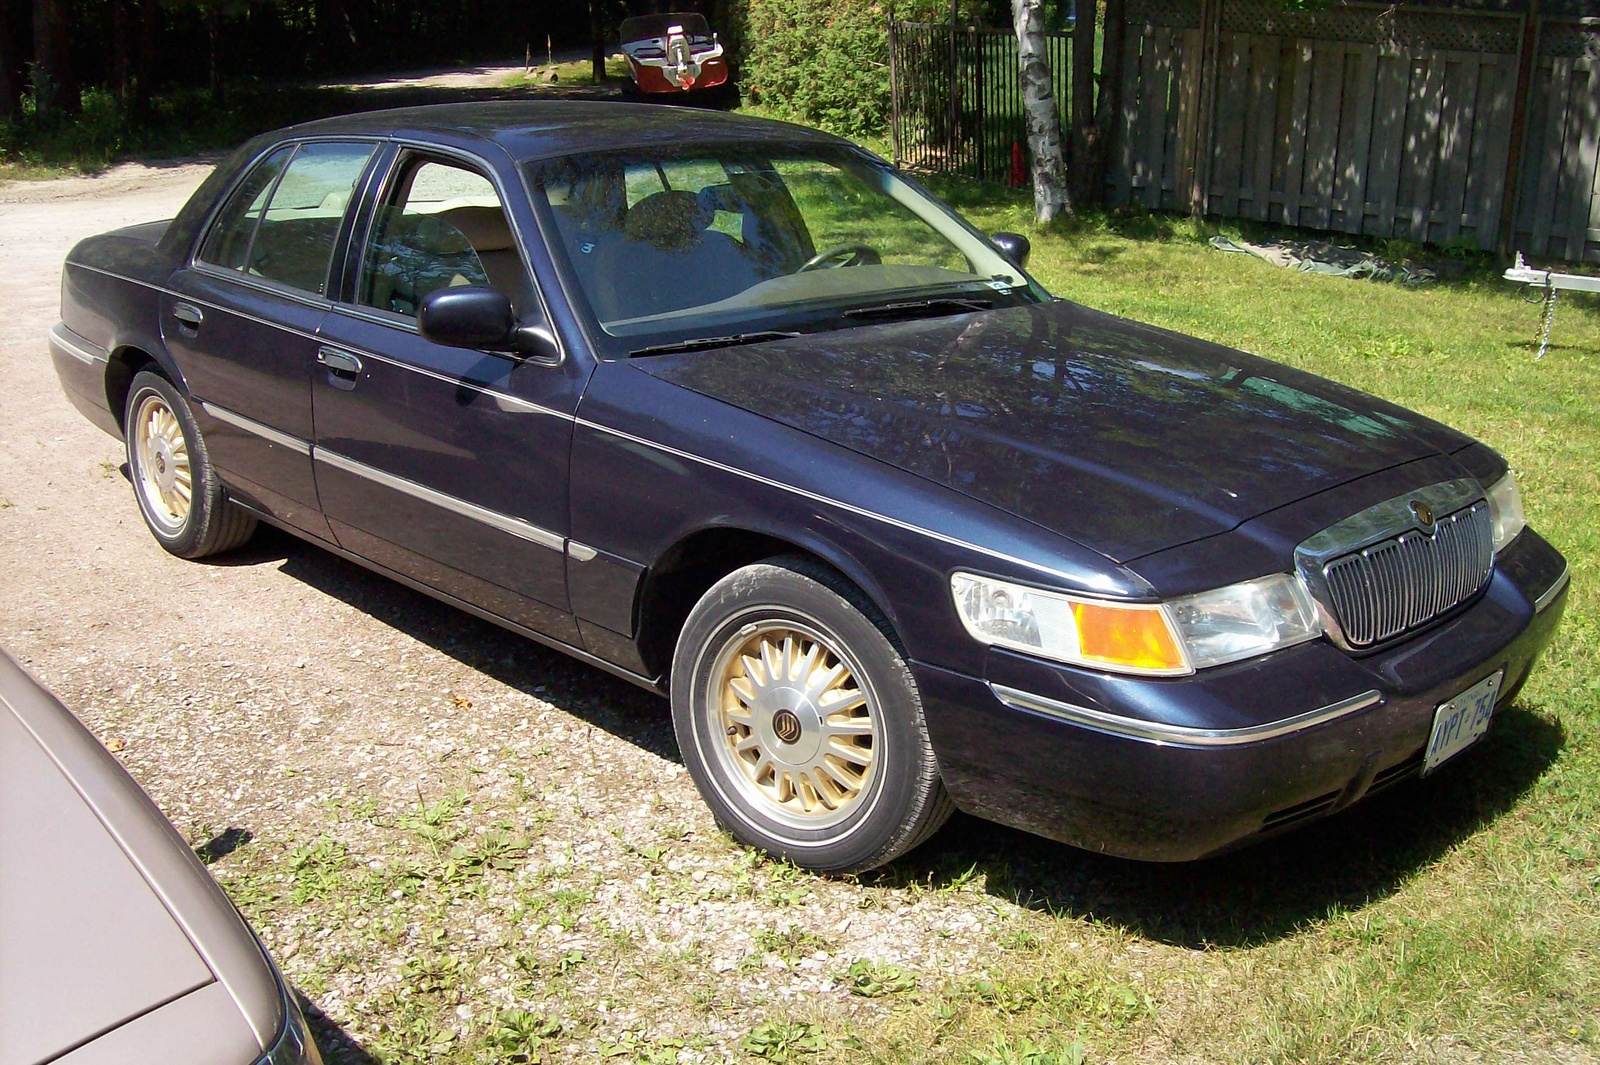 1999 Mercury Grand Marquis 4 Dr LS Sedan picture